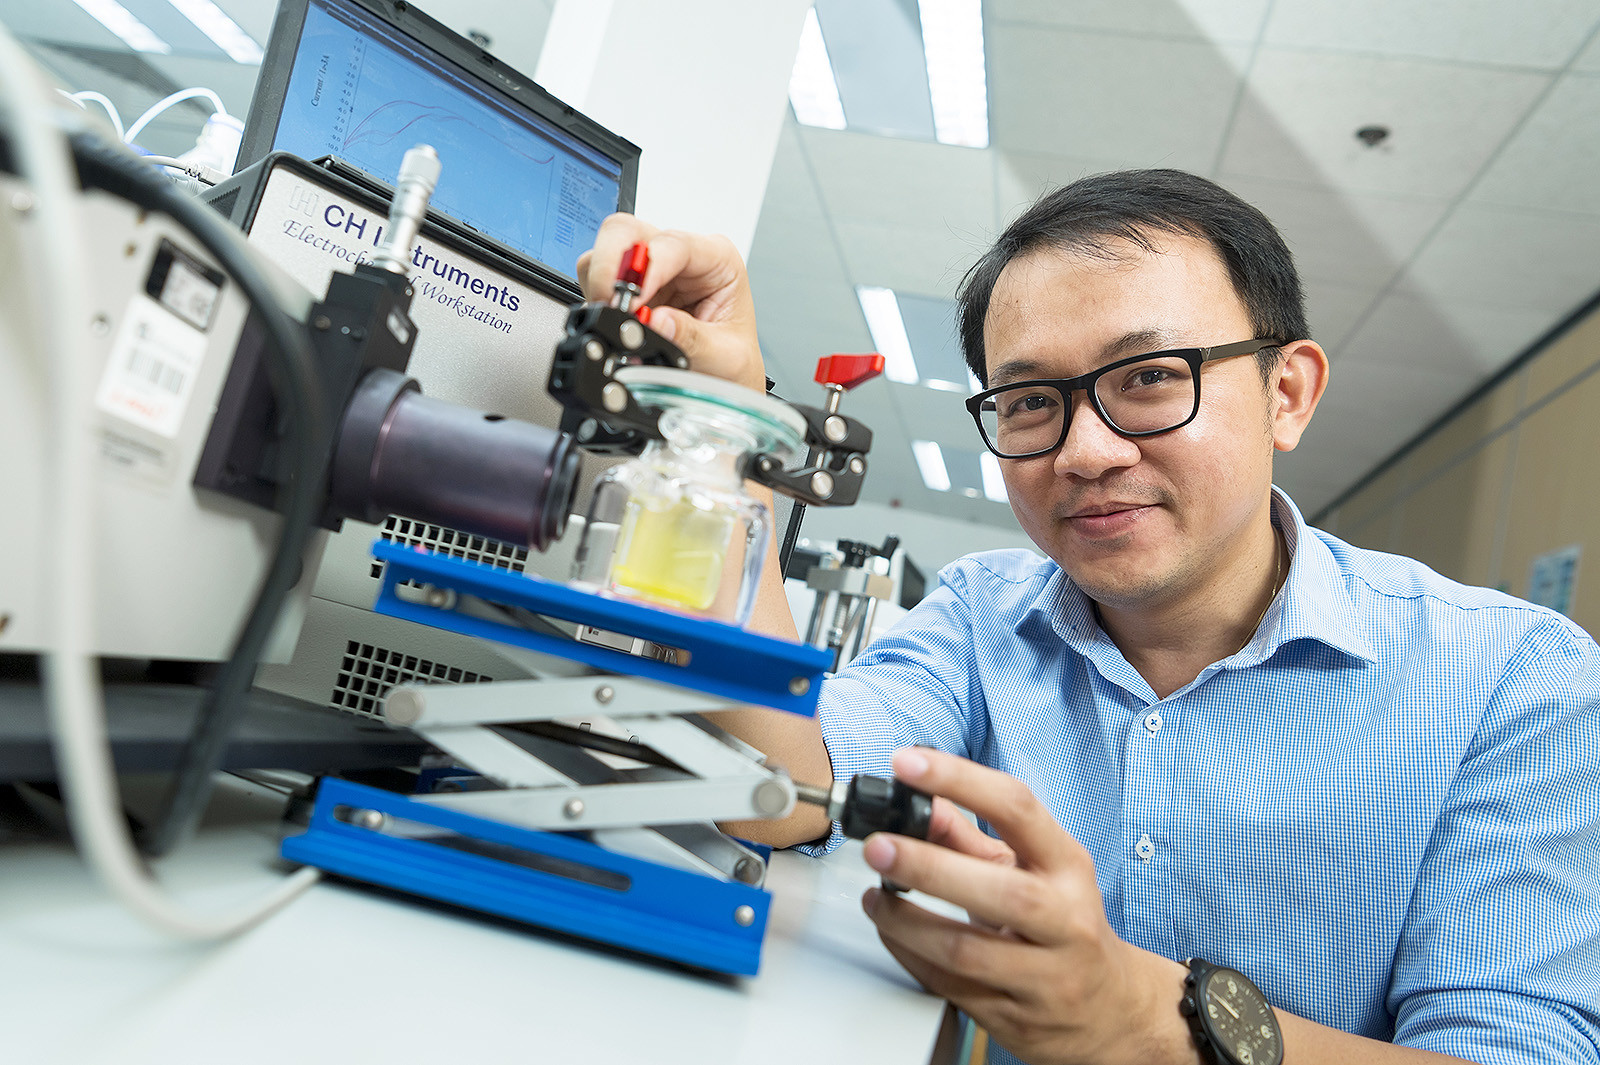 Dr Ng's research may help to resolve the two issues of energy shortage and pollution.